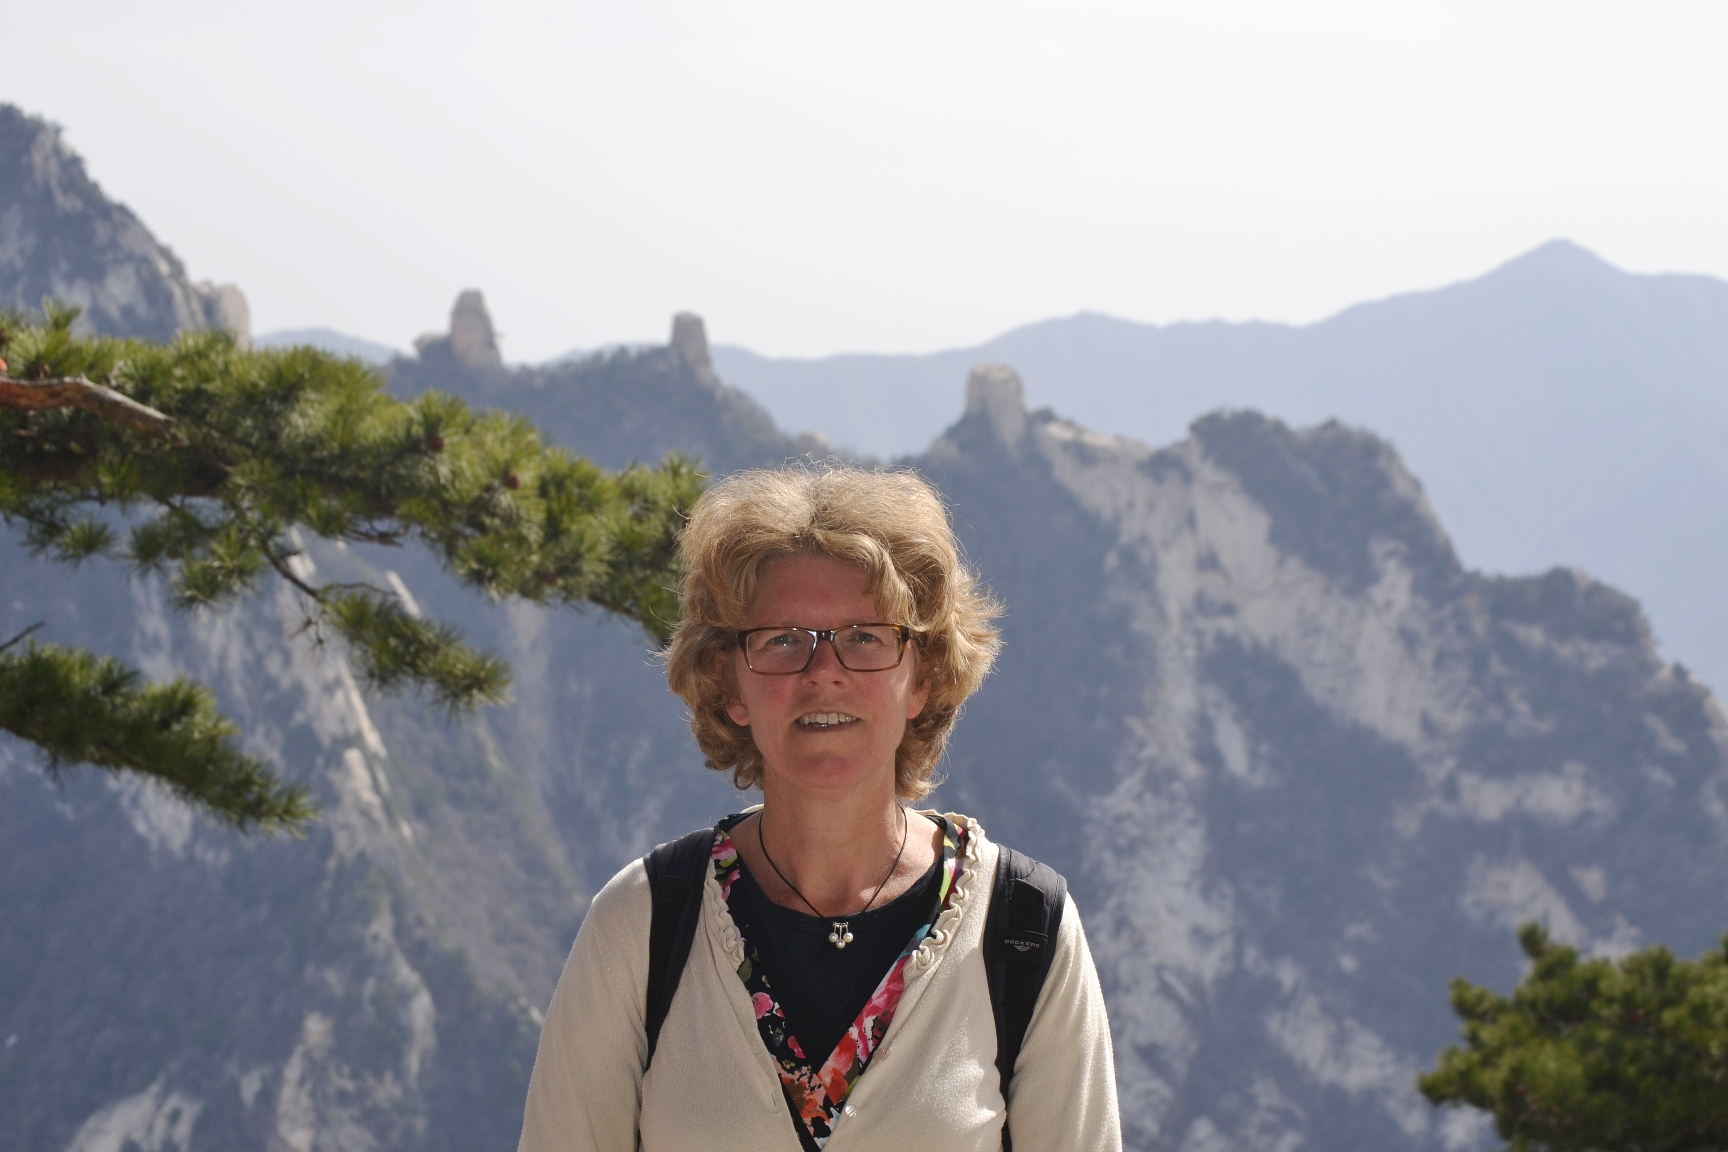 Marilou den Outer (Geledraak.nl) in Huangshan